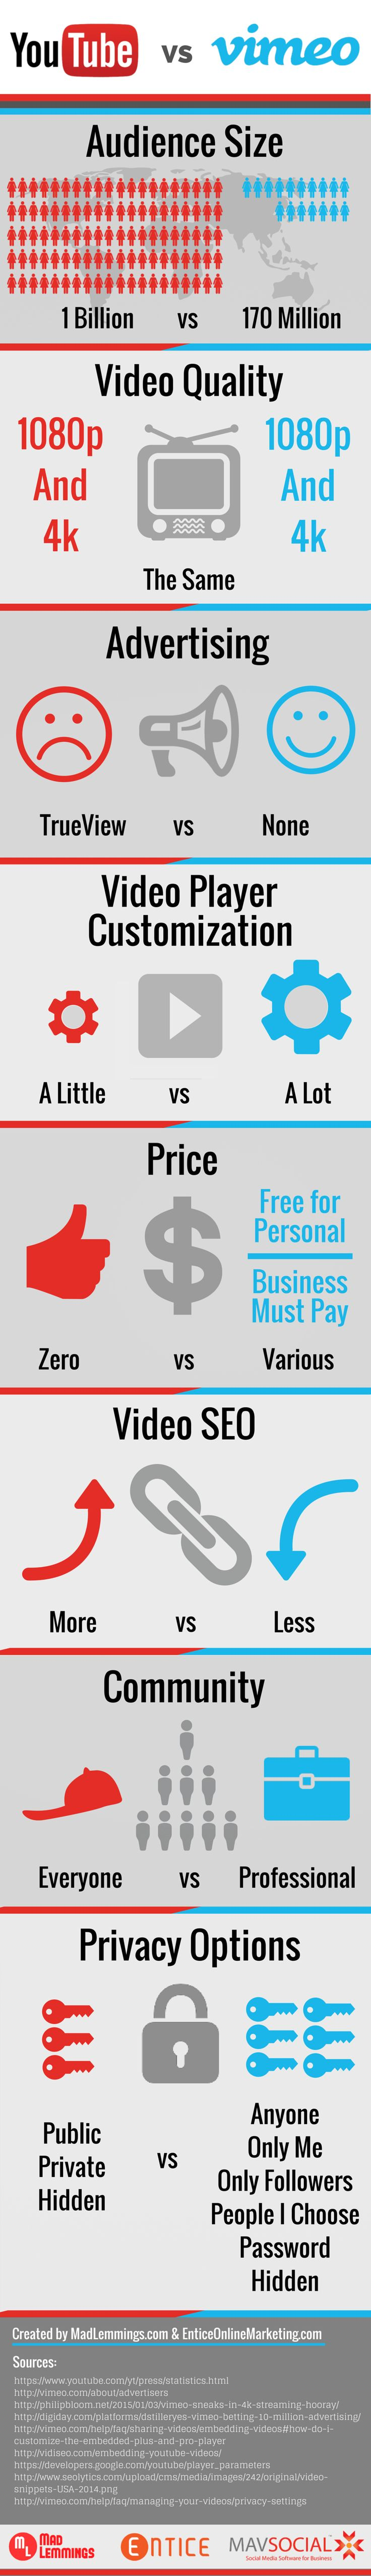 Vimeo vs YouTube: Which Video Platform is Right For You?